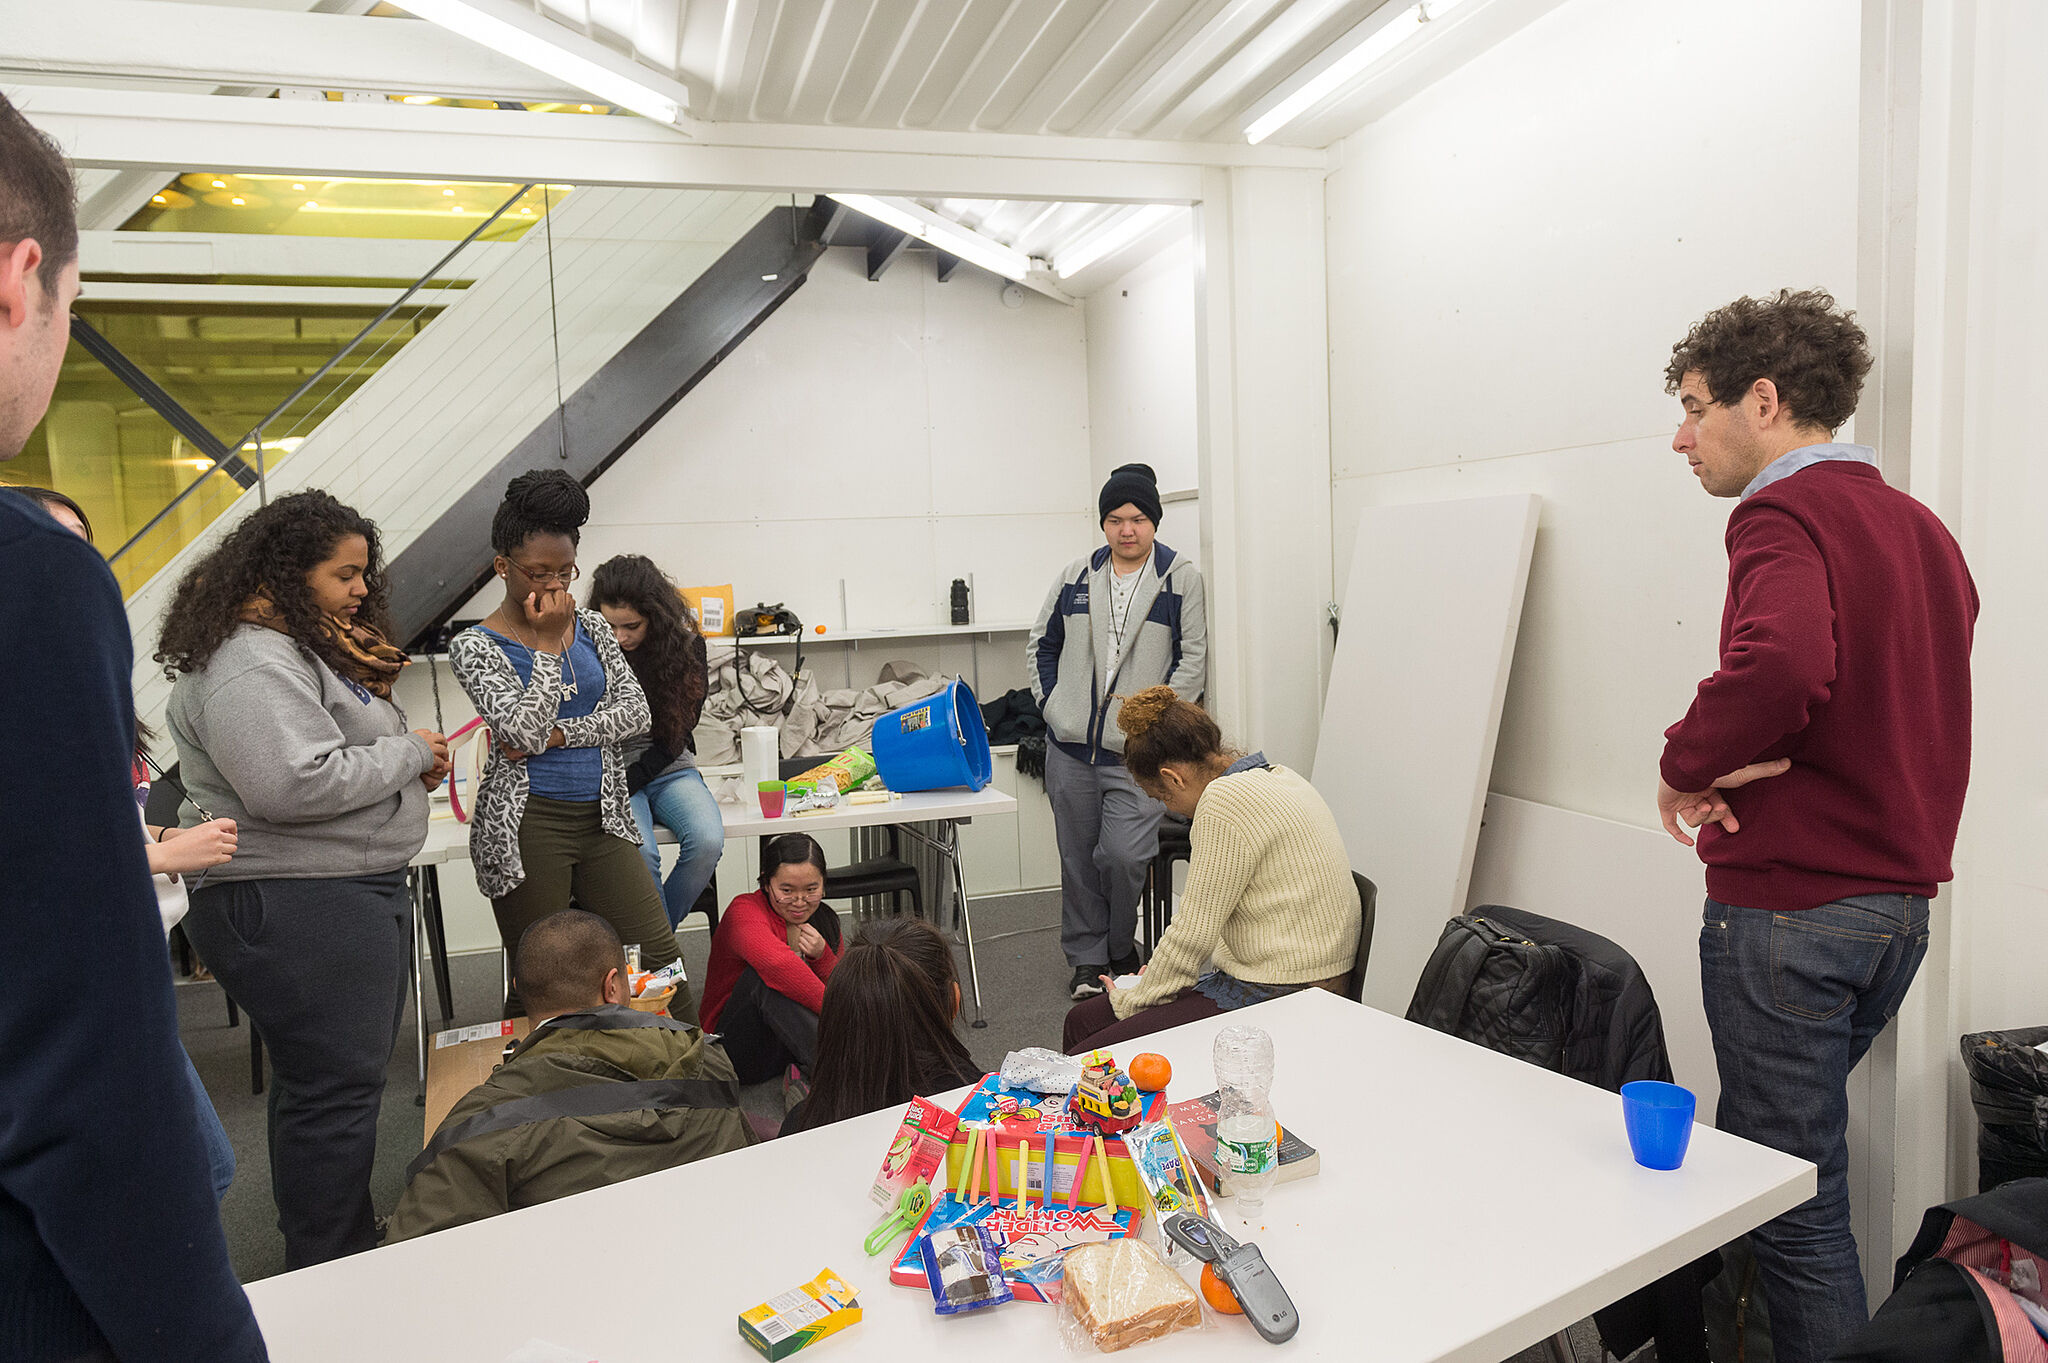 The artist works with students on a project with random objects.